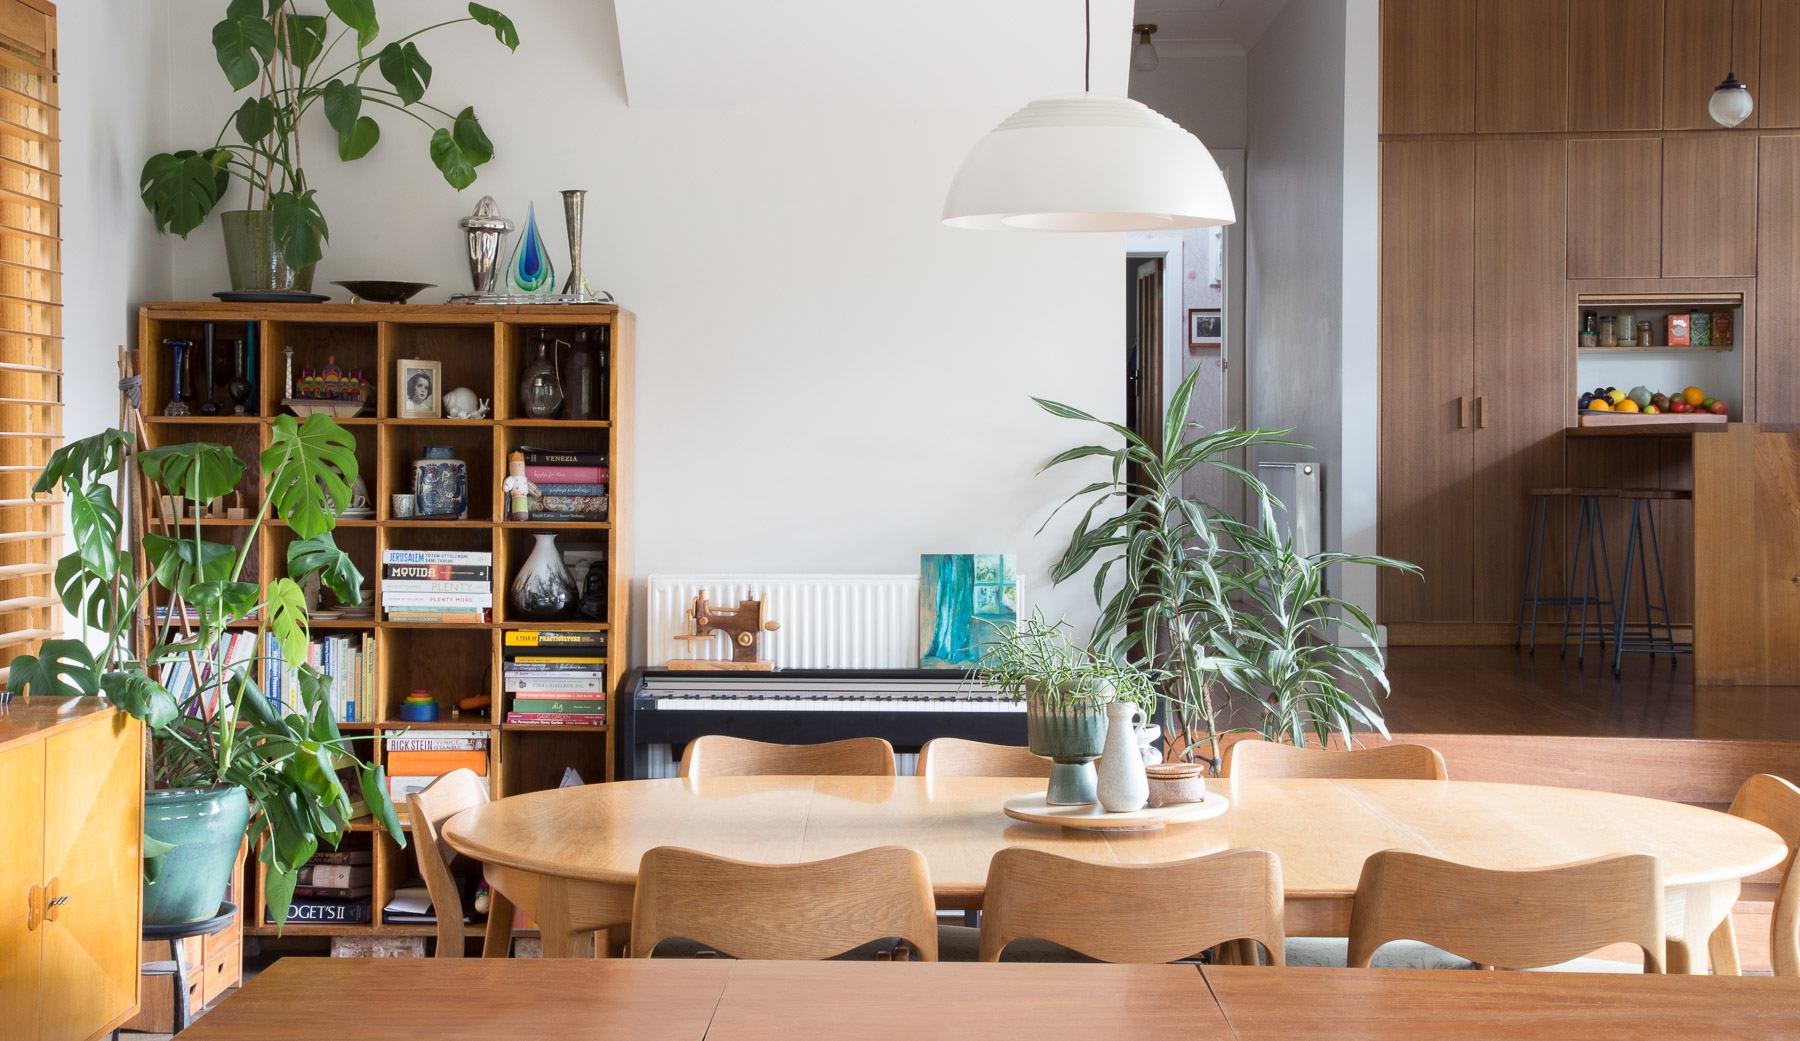 Secondhand light fitting and furnishings have been used throughout